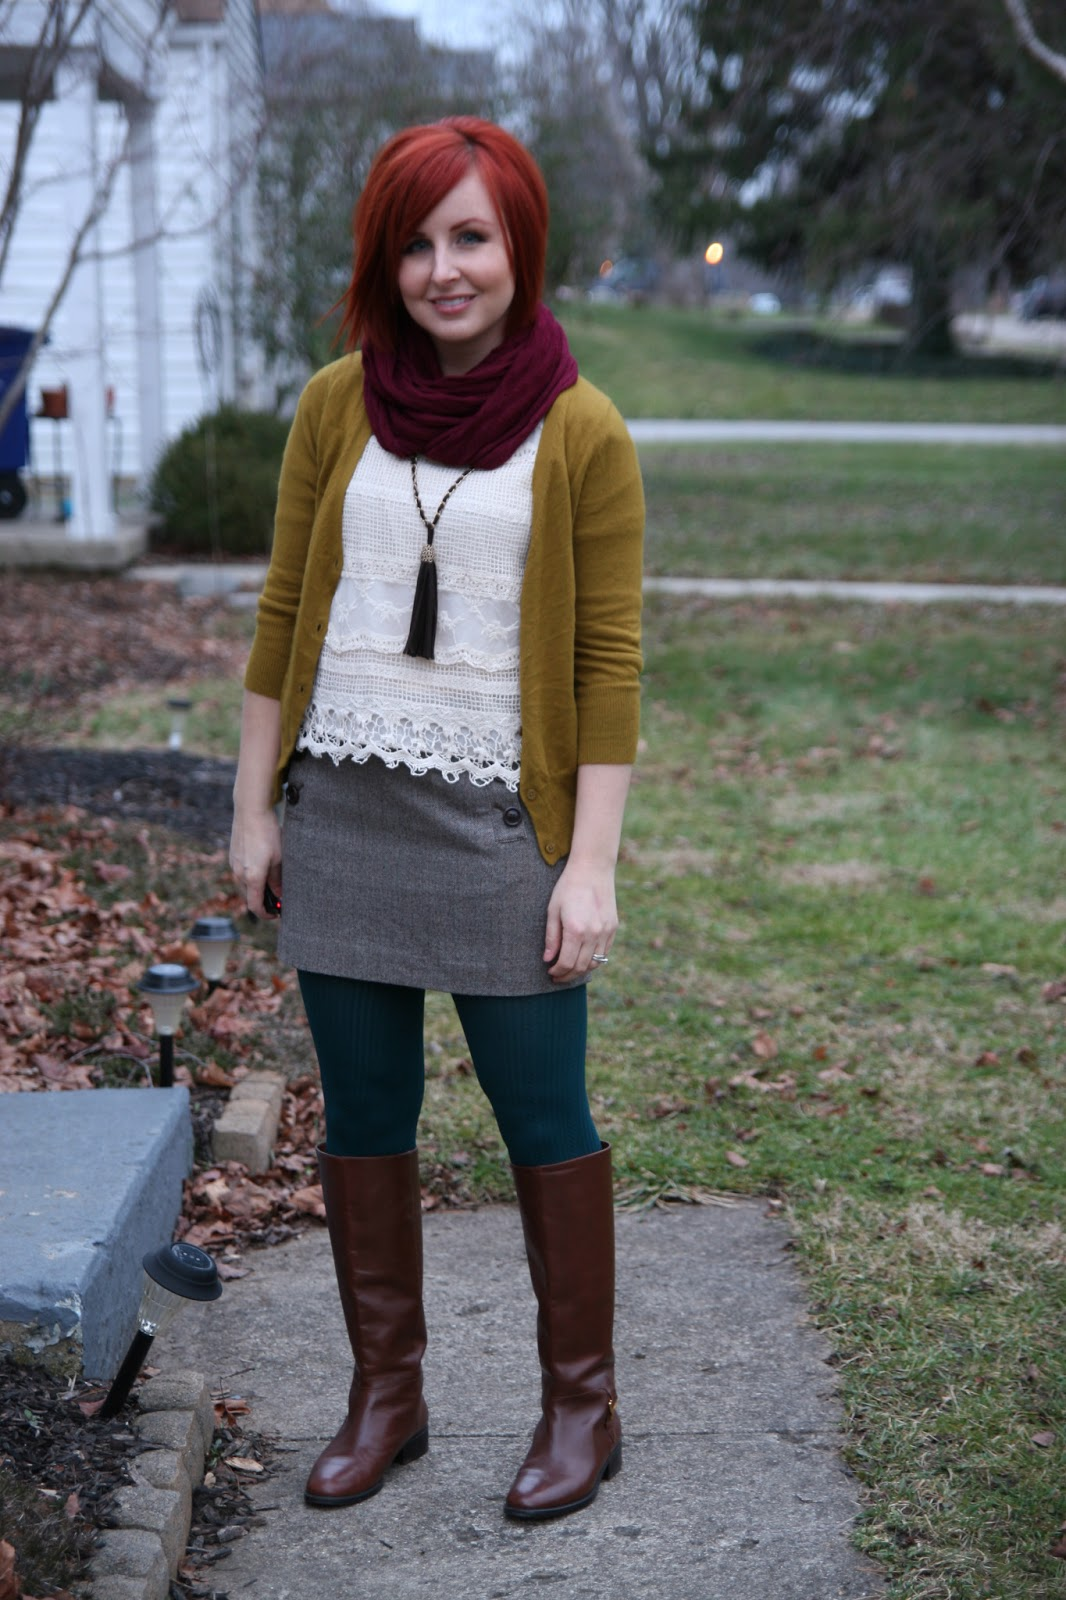 Thrift And Shout: Cute Outfit Of The Day: Lace And Tweed